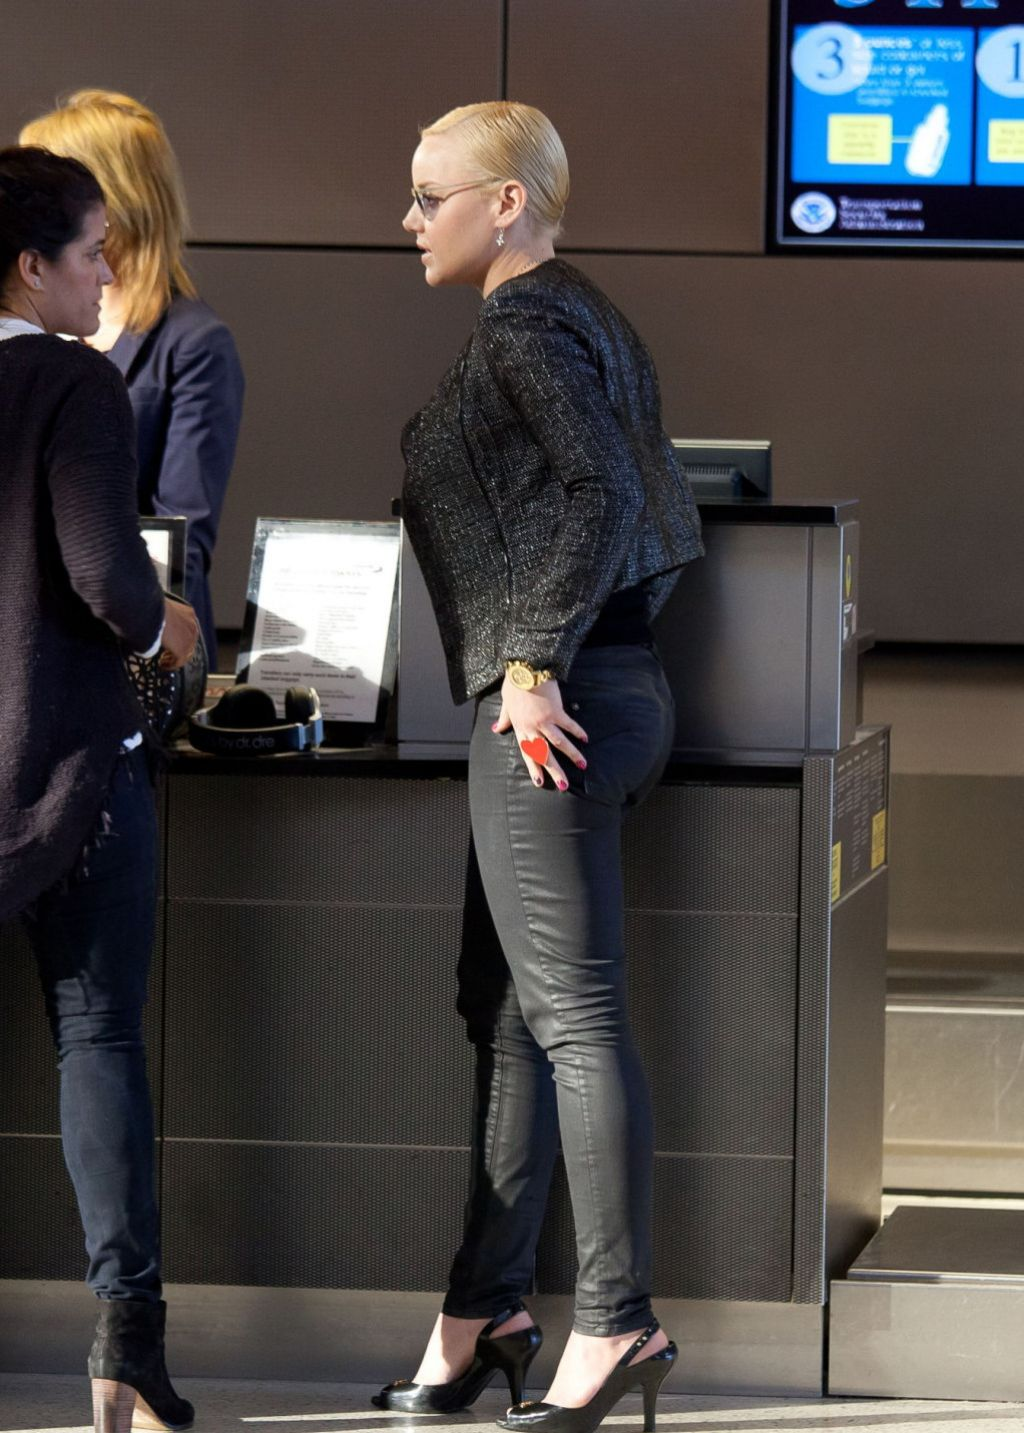 Abbie Cornish - Booty in Jeans - LAX Airport in Los Angeles, February 2014